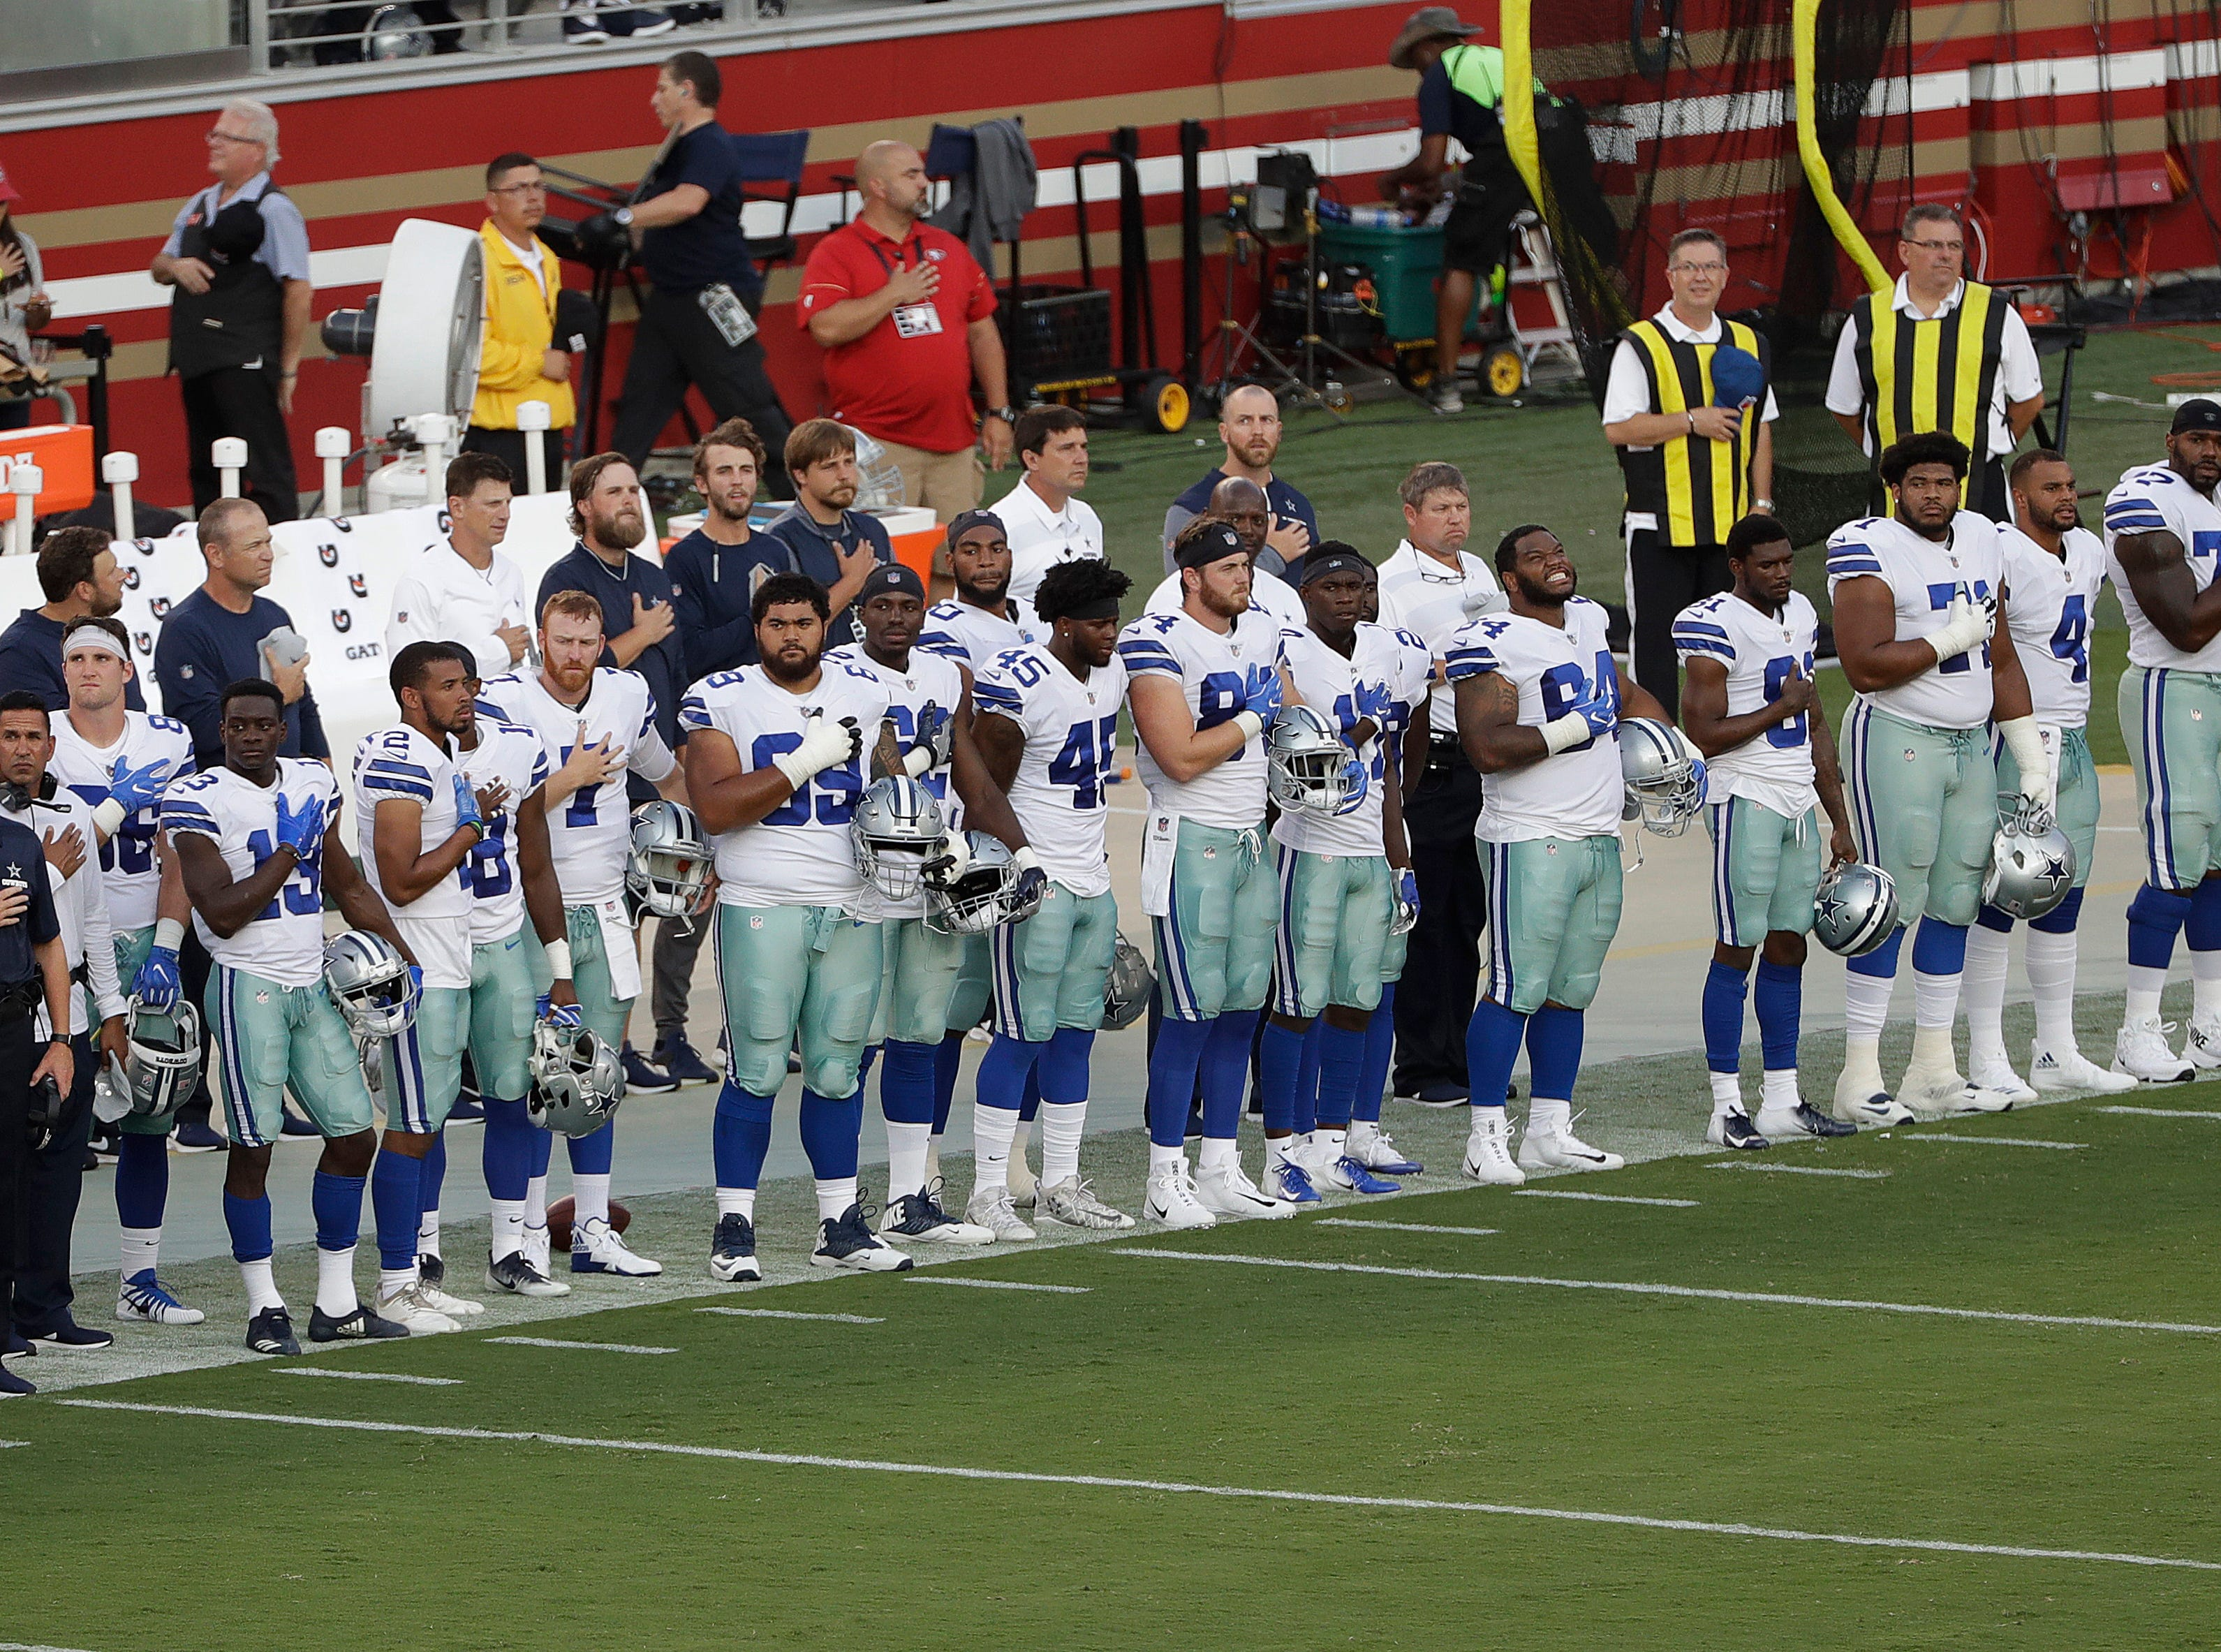 Dallas Cowboys players stand during the national anthem before an NFL preseason football game against the San Francisco 49ers in Santa Clara, Calif., Thursday, Aug. 9, 2018. (AP Photo/Jeff Chiu)